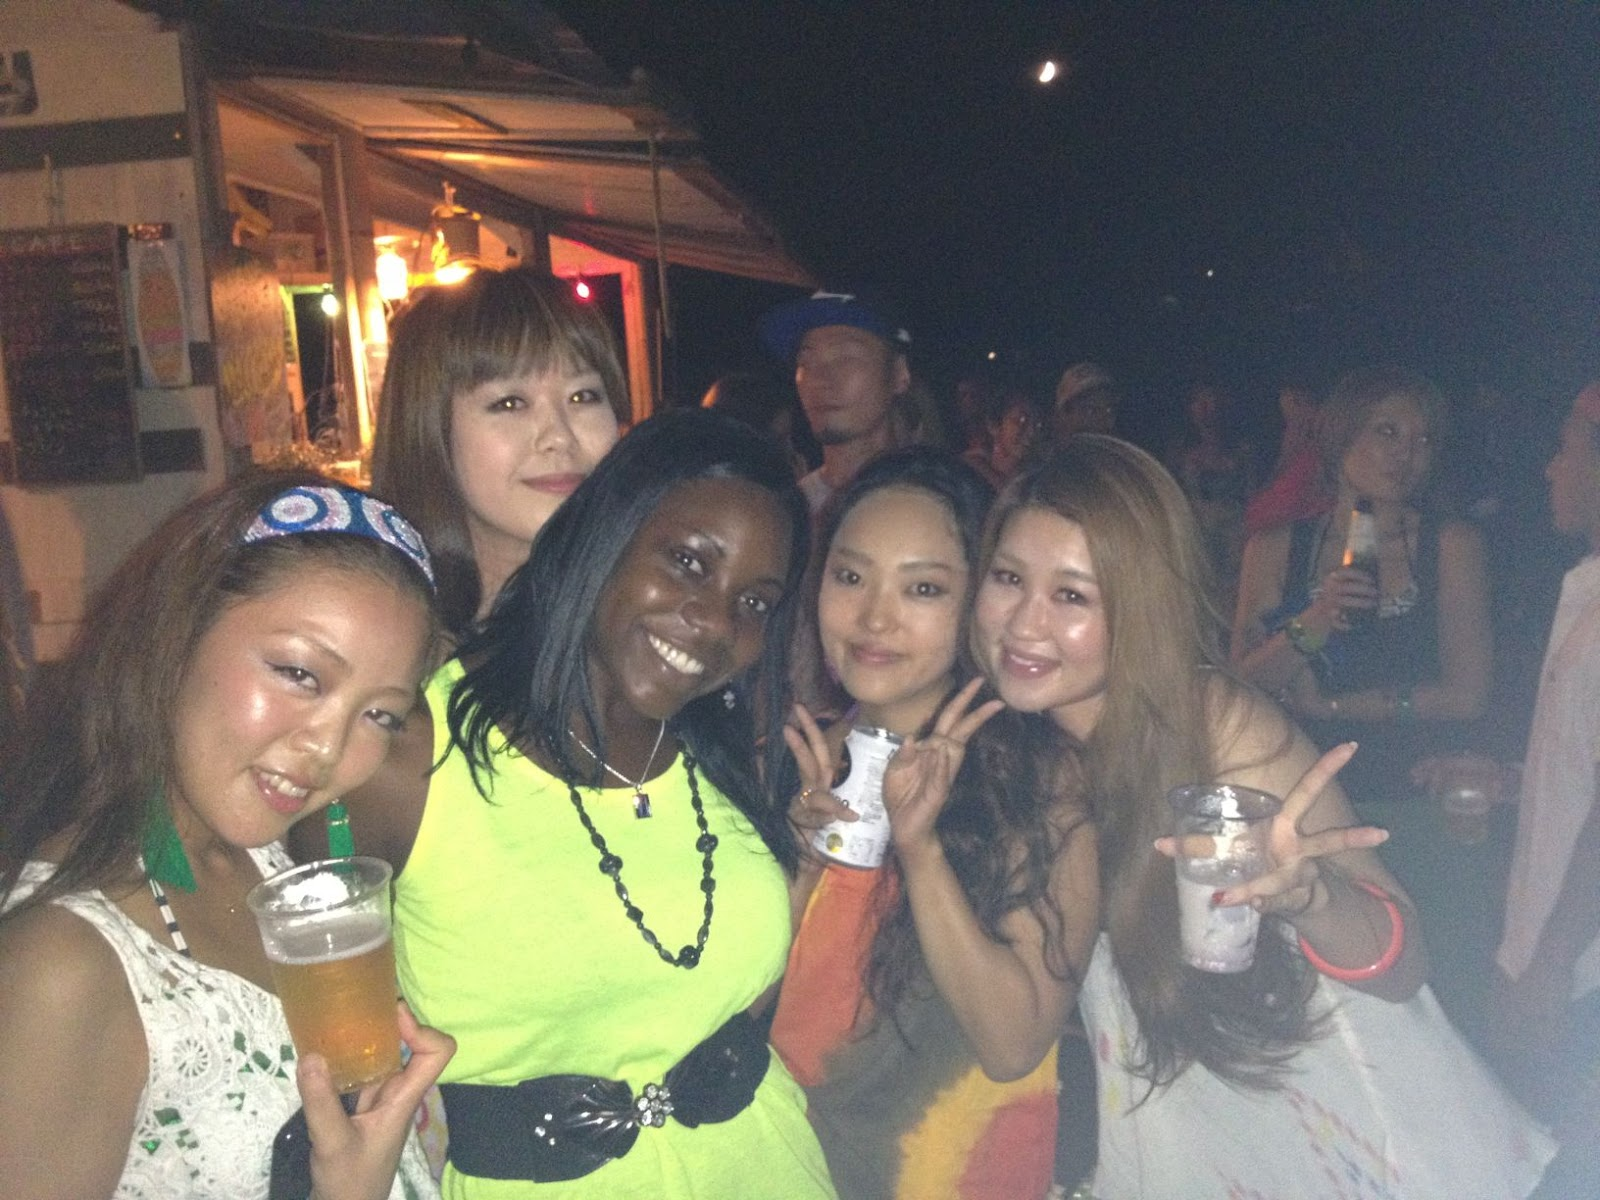 Maki (on the left) also visited Jamaica before and went to a few of those